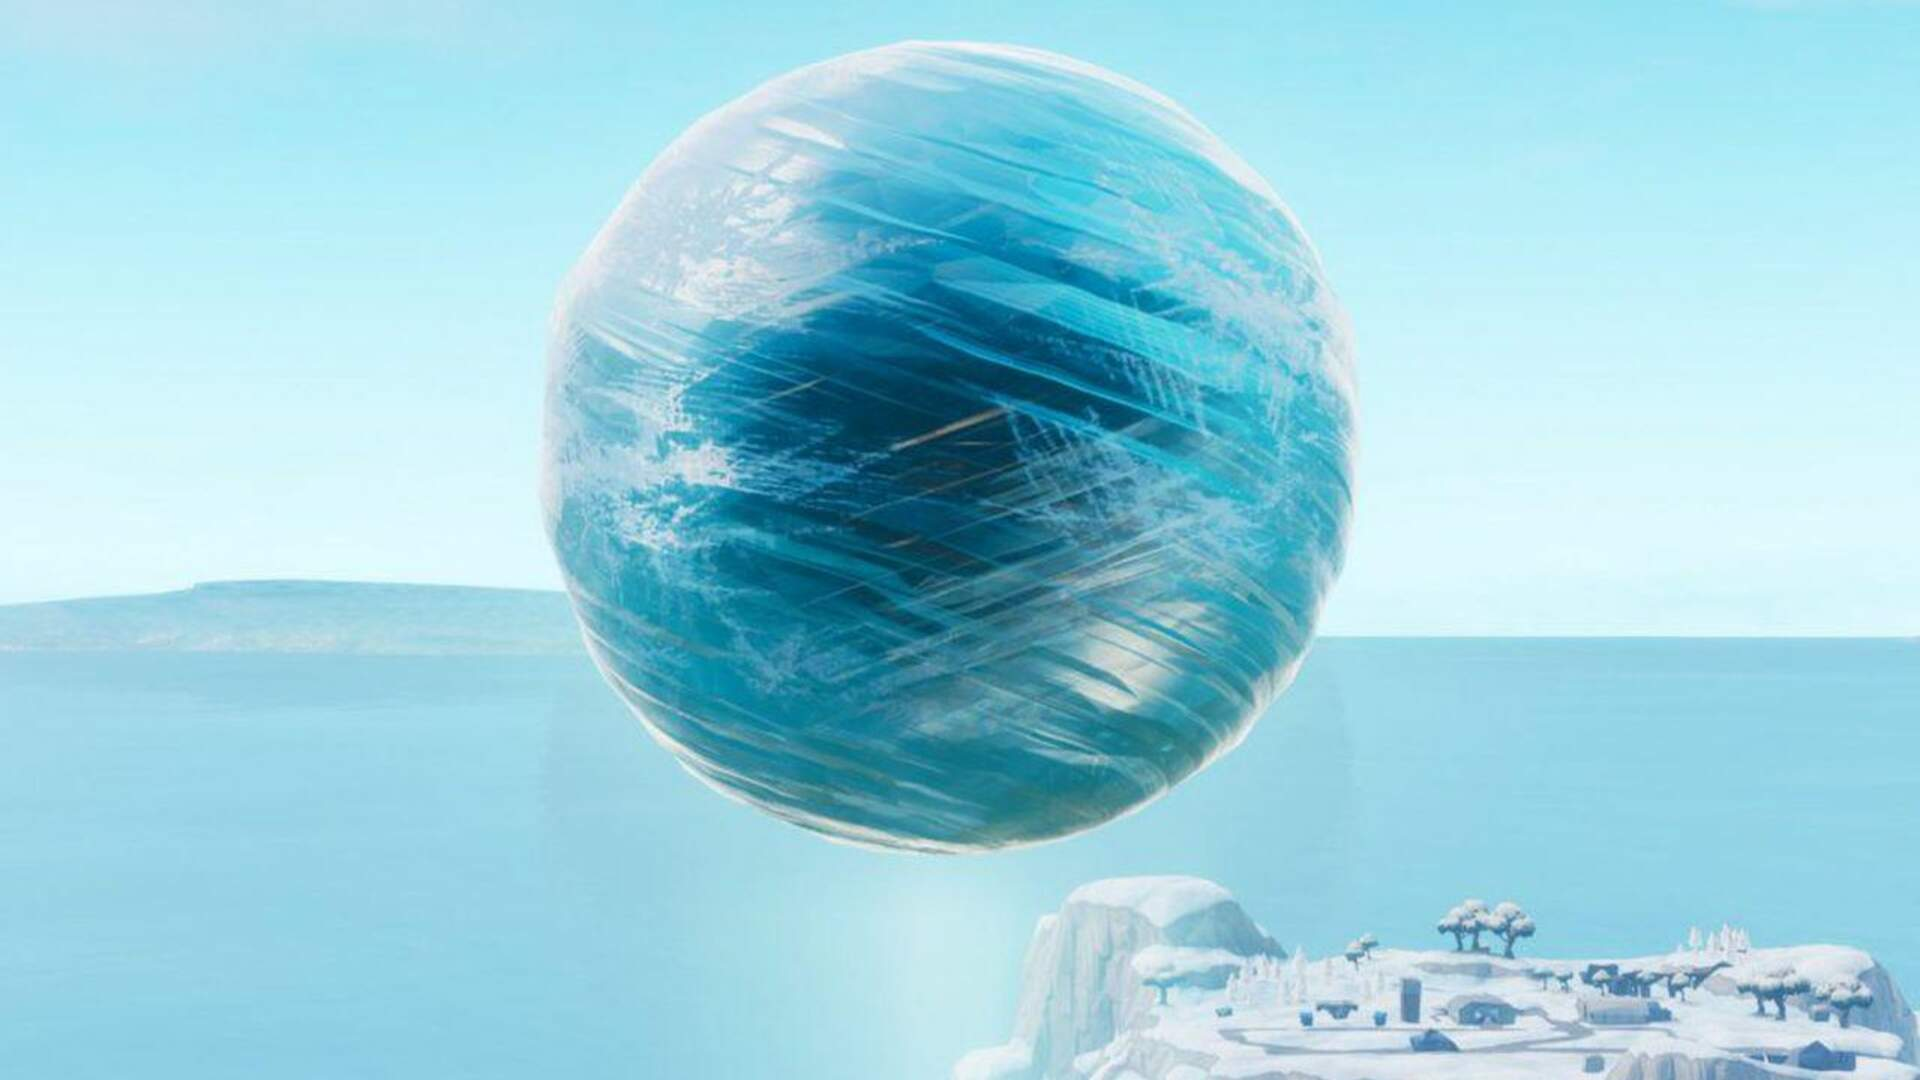 Fortnite Welcomes a New Ice Orb Overlord